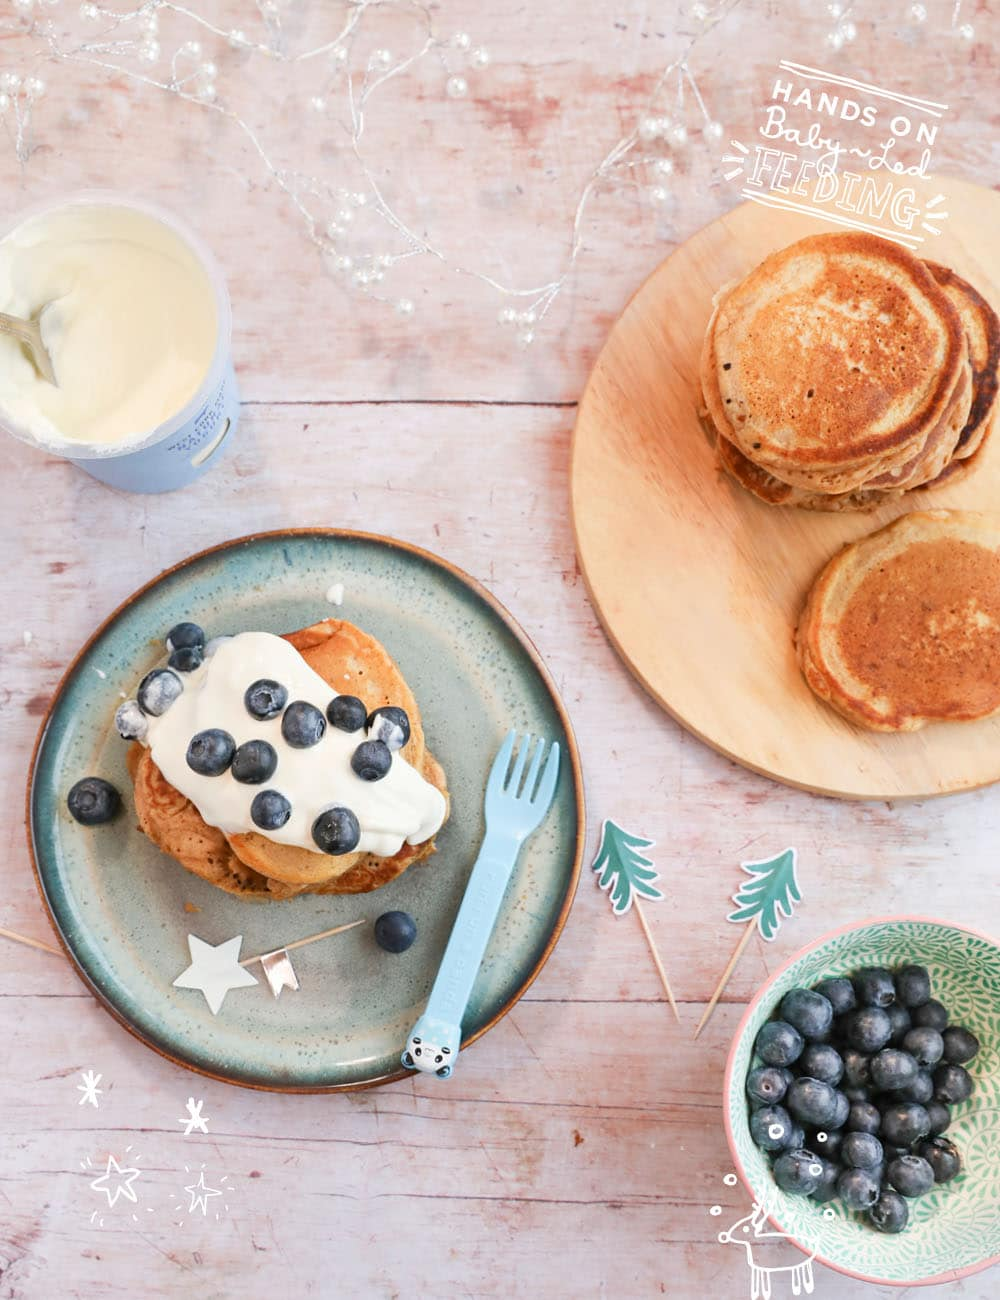 Light and fluffy sweet potato and buttermilk pancakes, spiced with cinnamon and nutmeg, topped with protein packed Greek yogurt and antioxidant rich blueberries. A healthy baby led weaning breakfast. This easy recipe makes a festive Christmas breakfast recipe! #sweetpotato #pancakes #christmasrecipe #holidayrecipe #babyledweaning #babyledfeeding